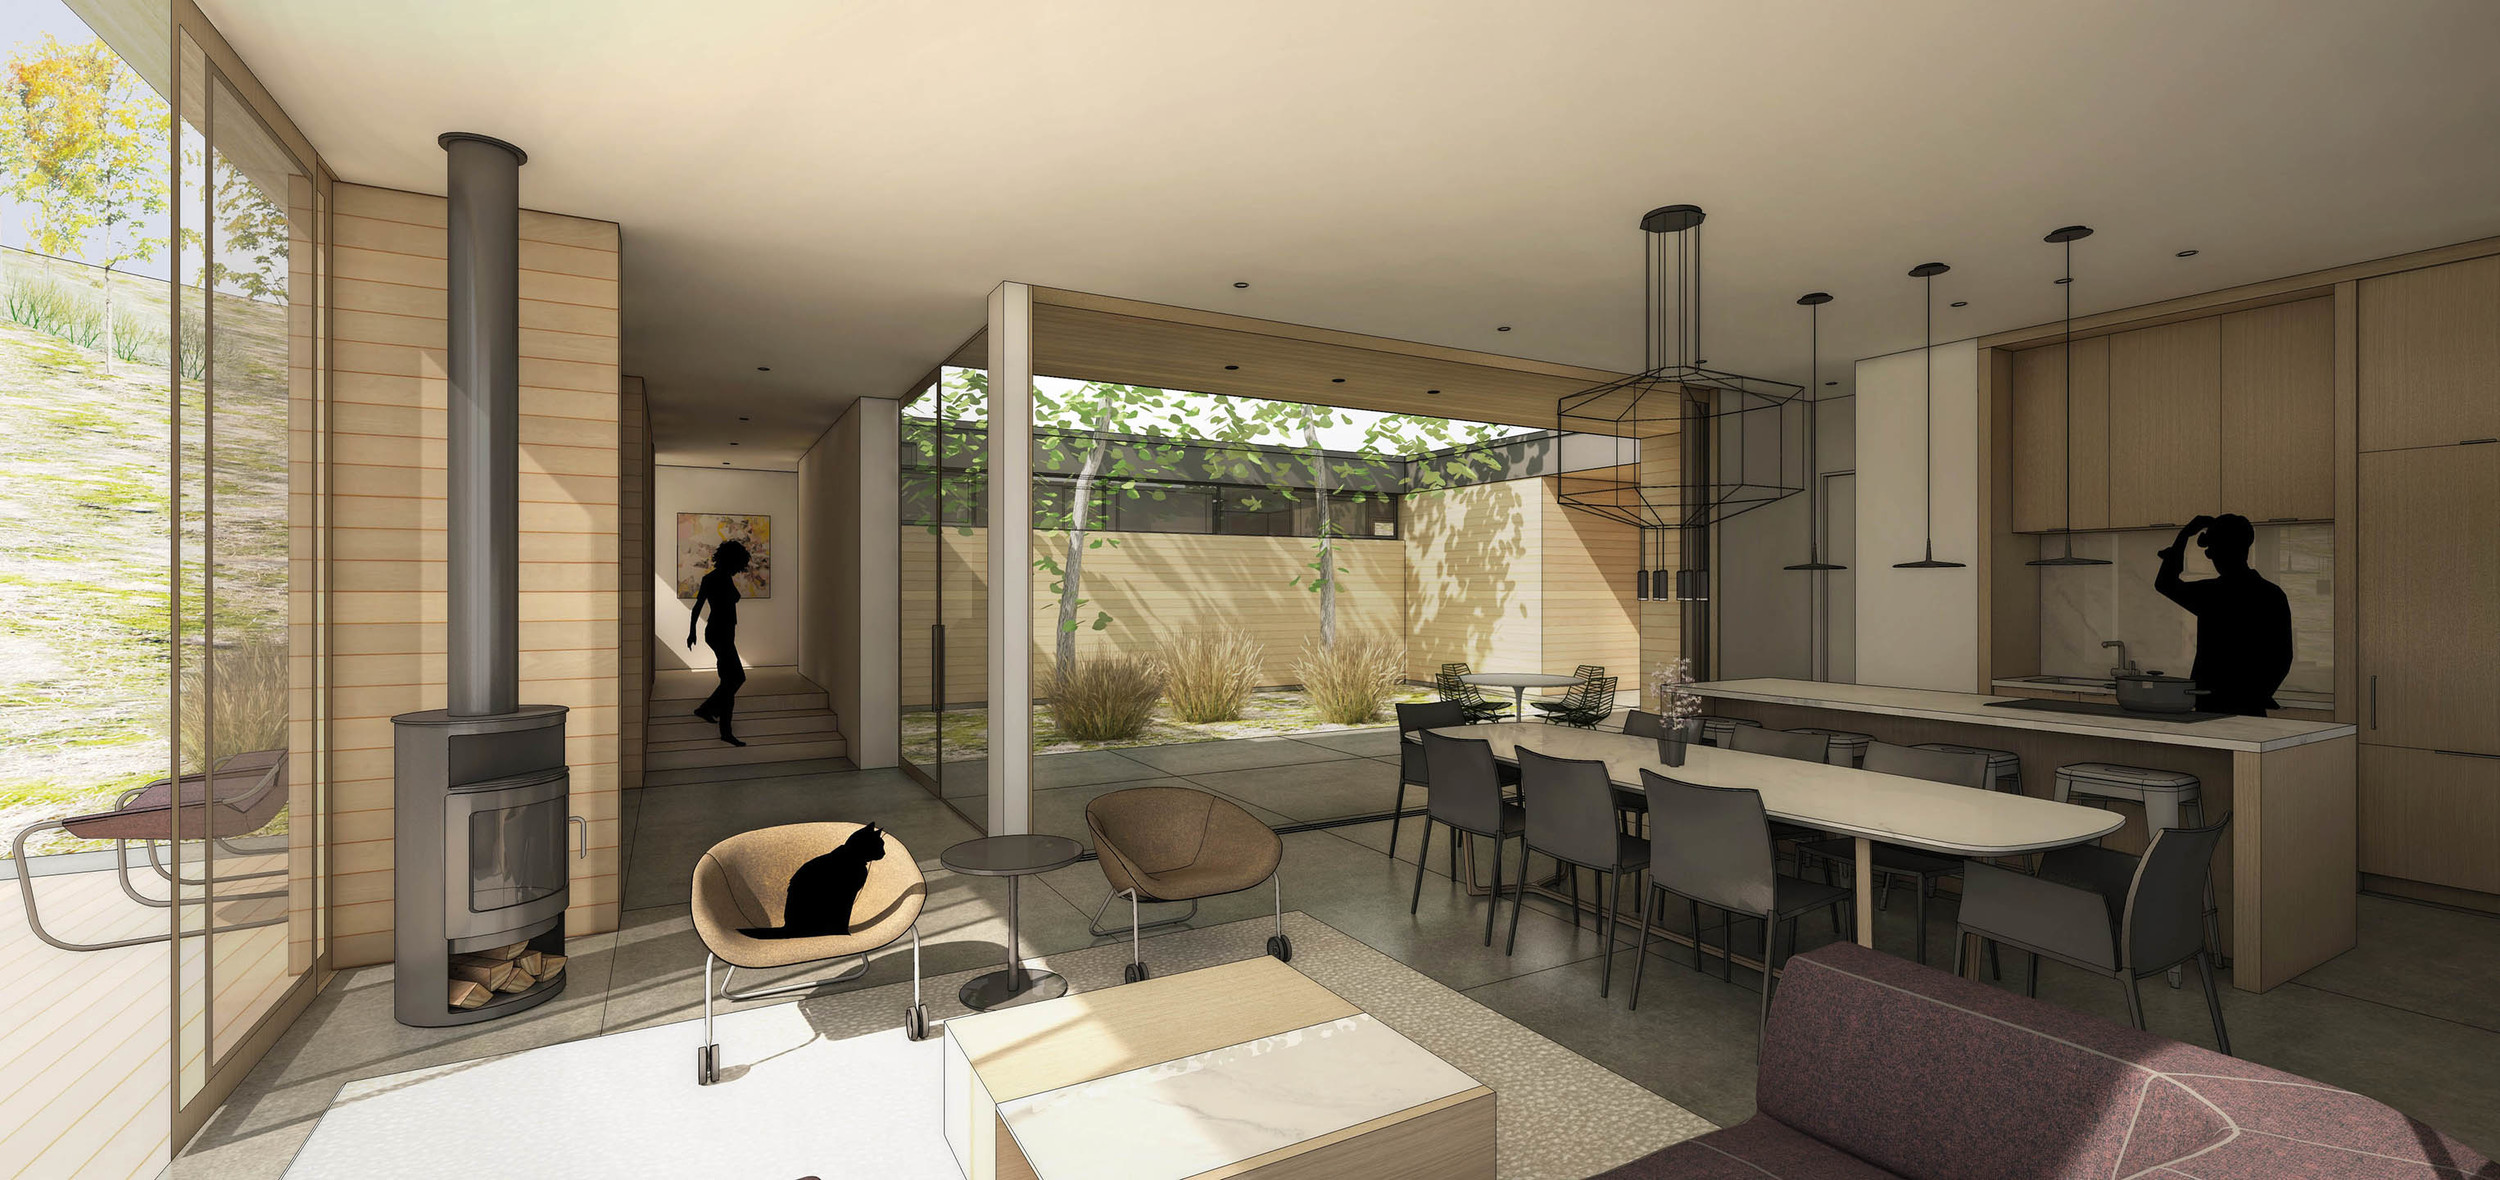 main living space - looking into courtyard